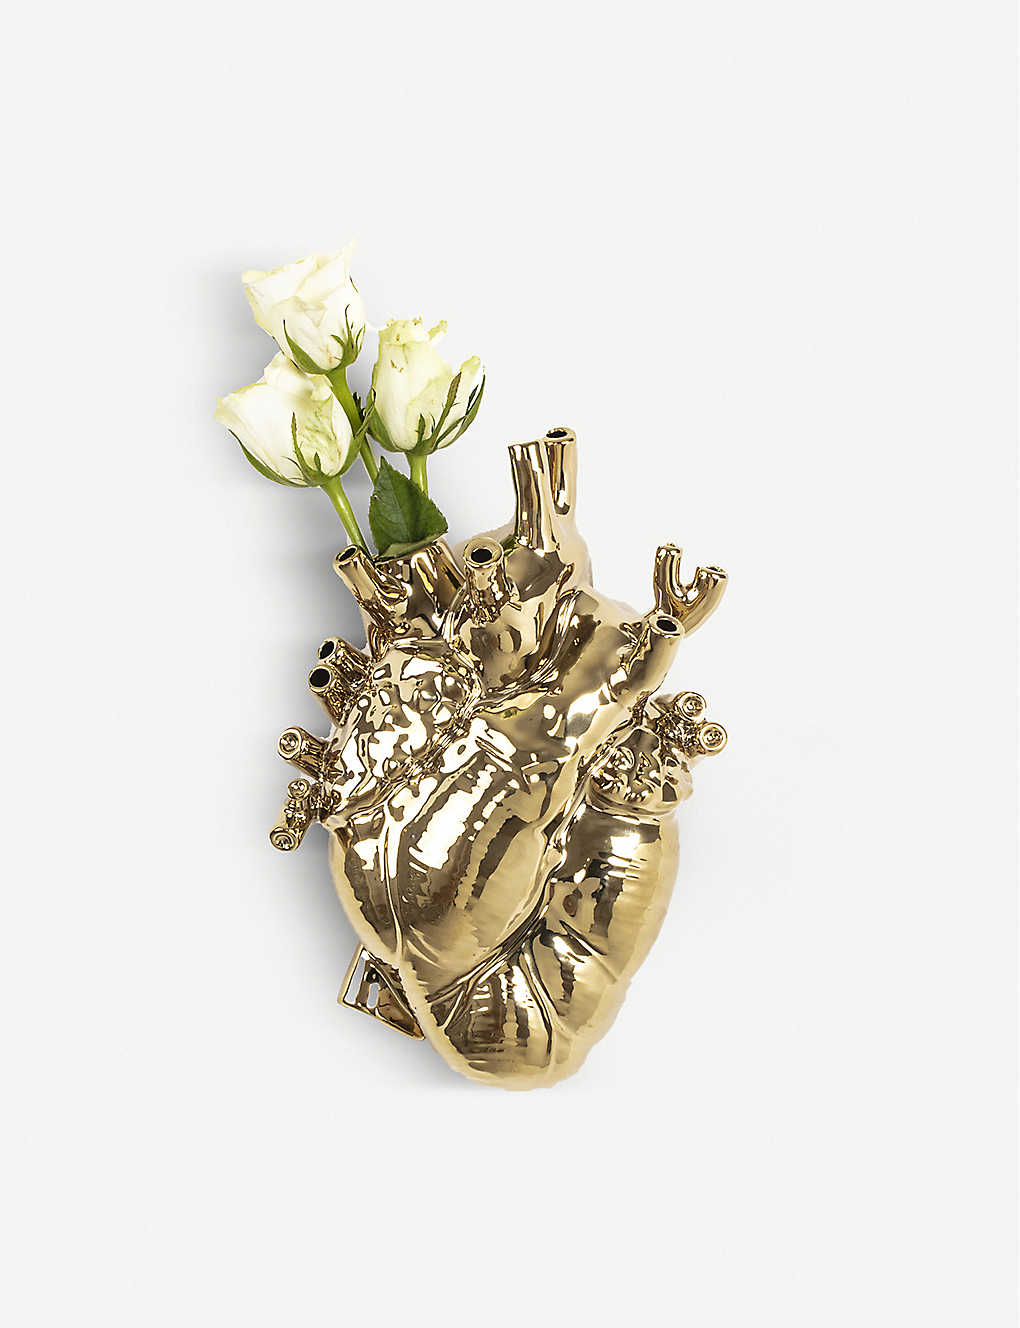 SELETTI: Love in Bloom heart-shape vase 25cm